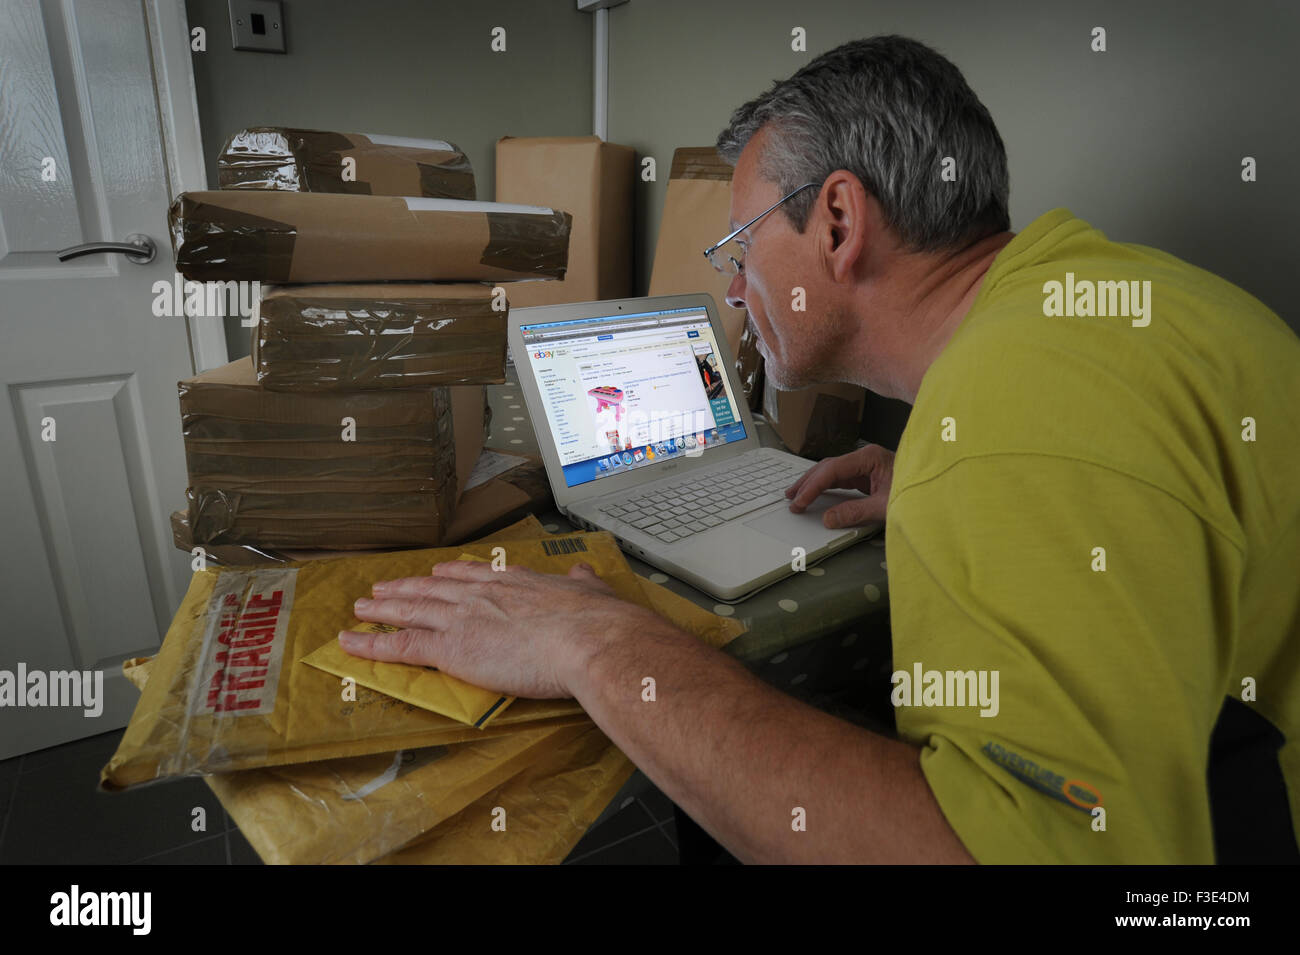 MAN AT HOME WITH PARCELS SELLING ITEMS ONLINE RE EBAY HOBBY SELLERS SELLING INTERNET INCOME TAX HMRC DECLARING INLAND - Stock Image